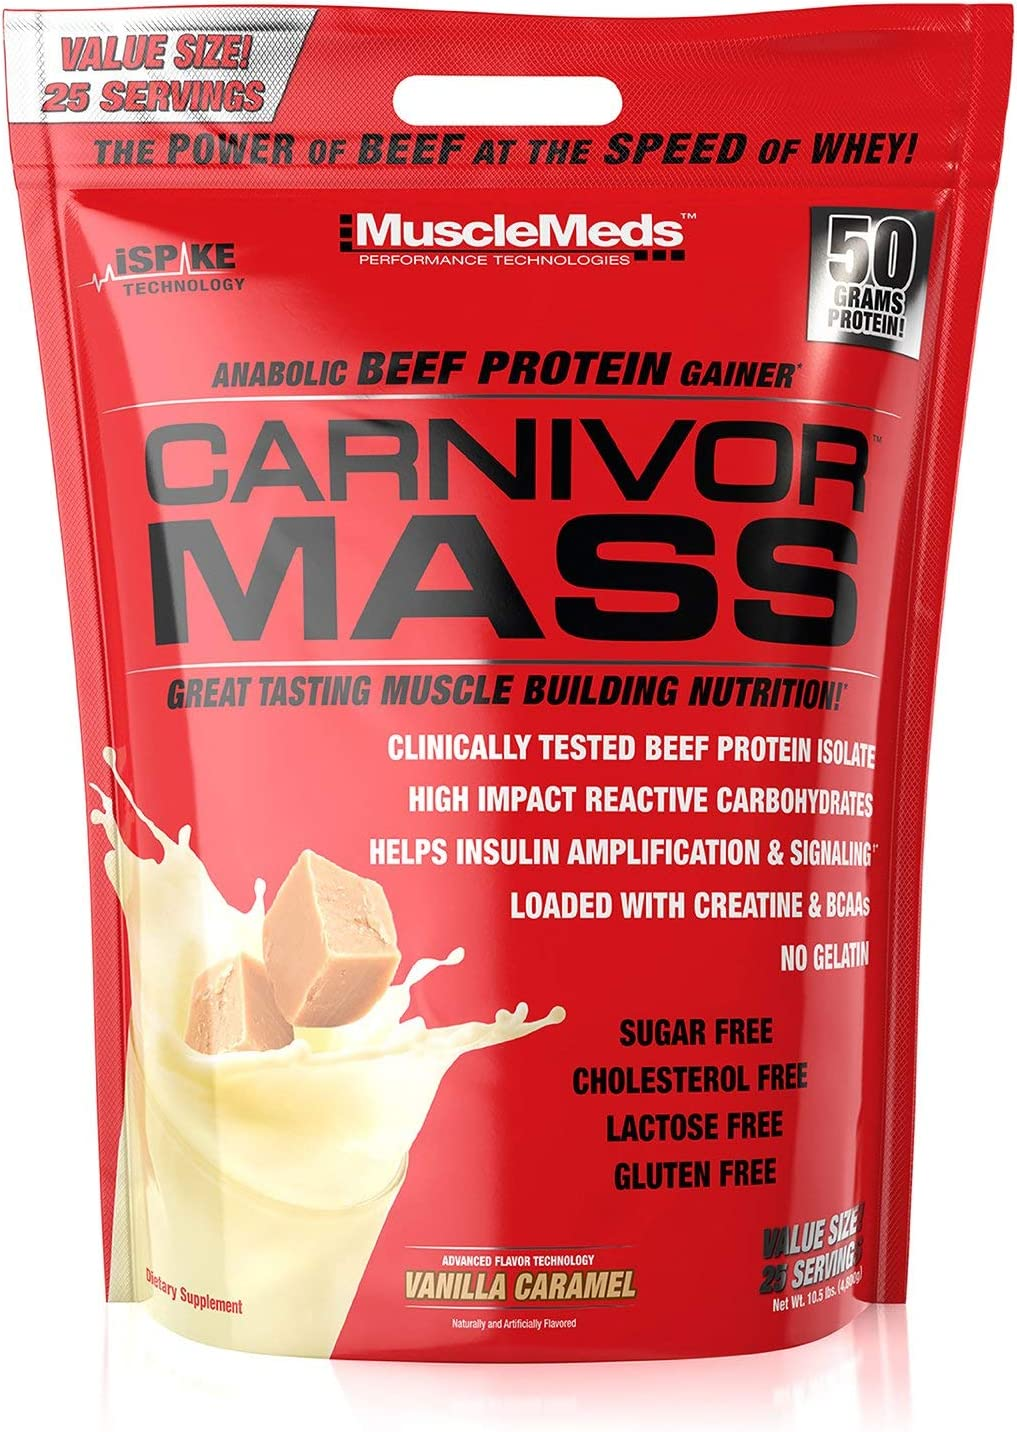 MuscleMeds Carnivor Mass Anabolic Beef Protein Gainer, Vanilla Caramel, 10.5 Pounds 71z9tUhMaeL